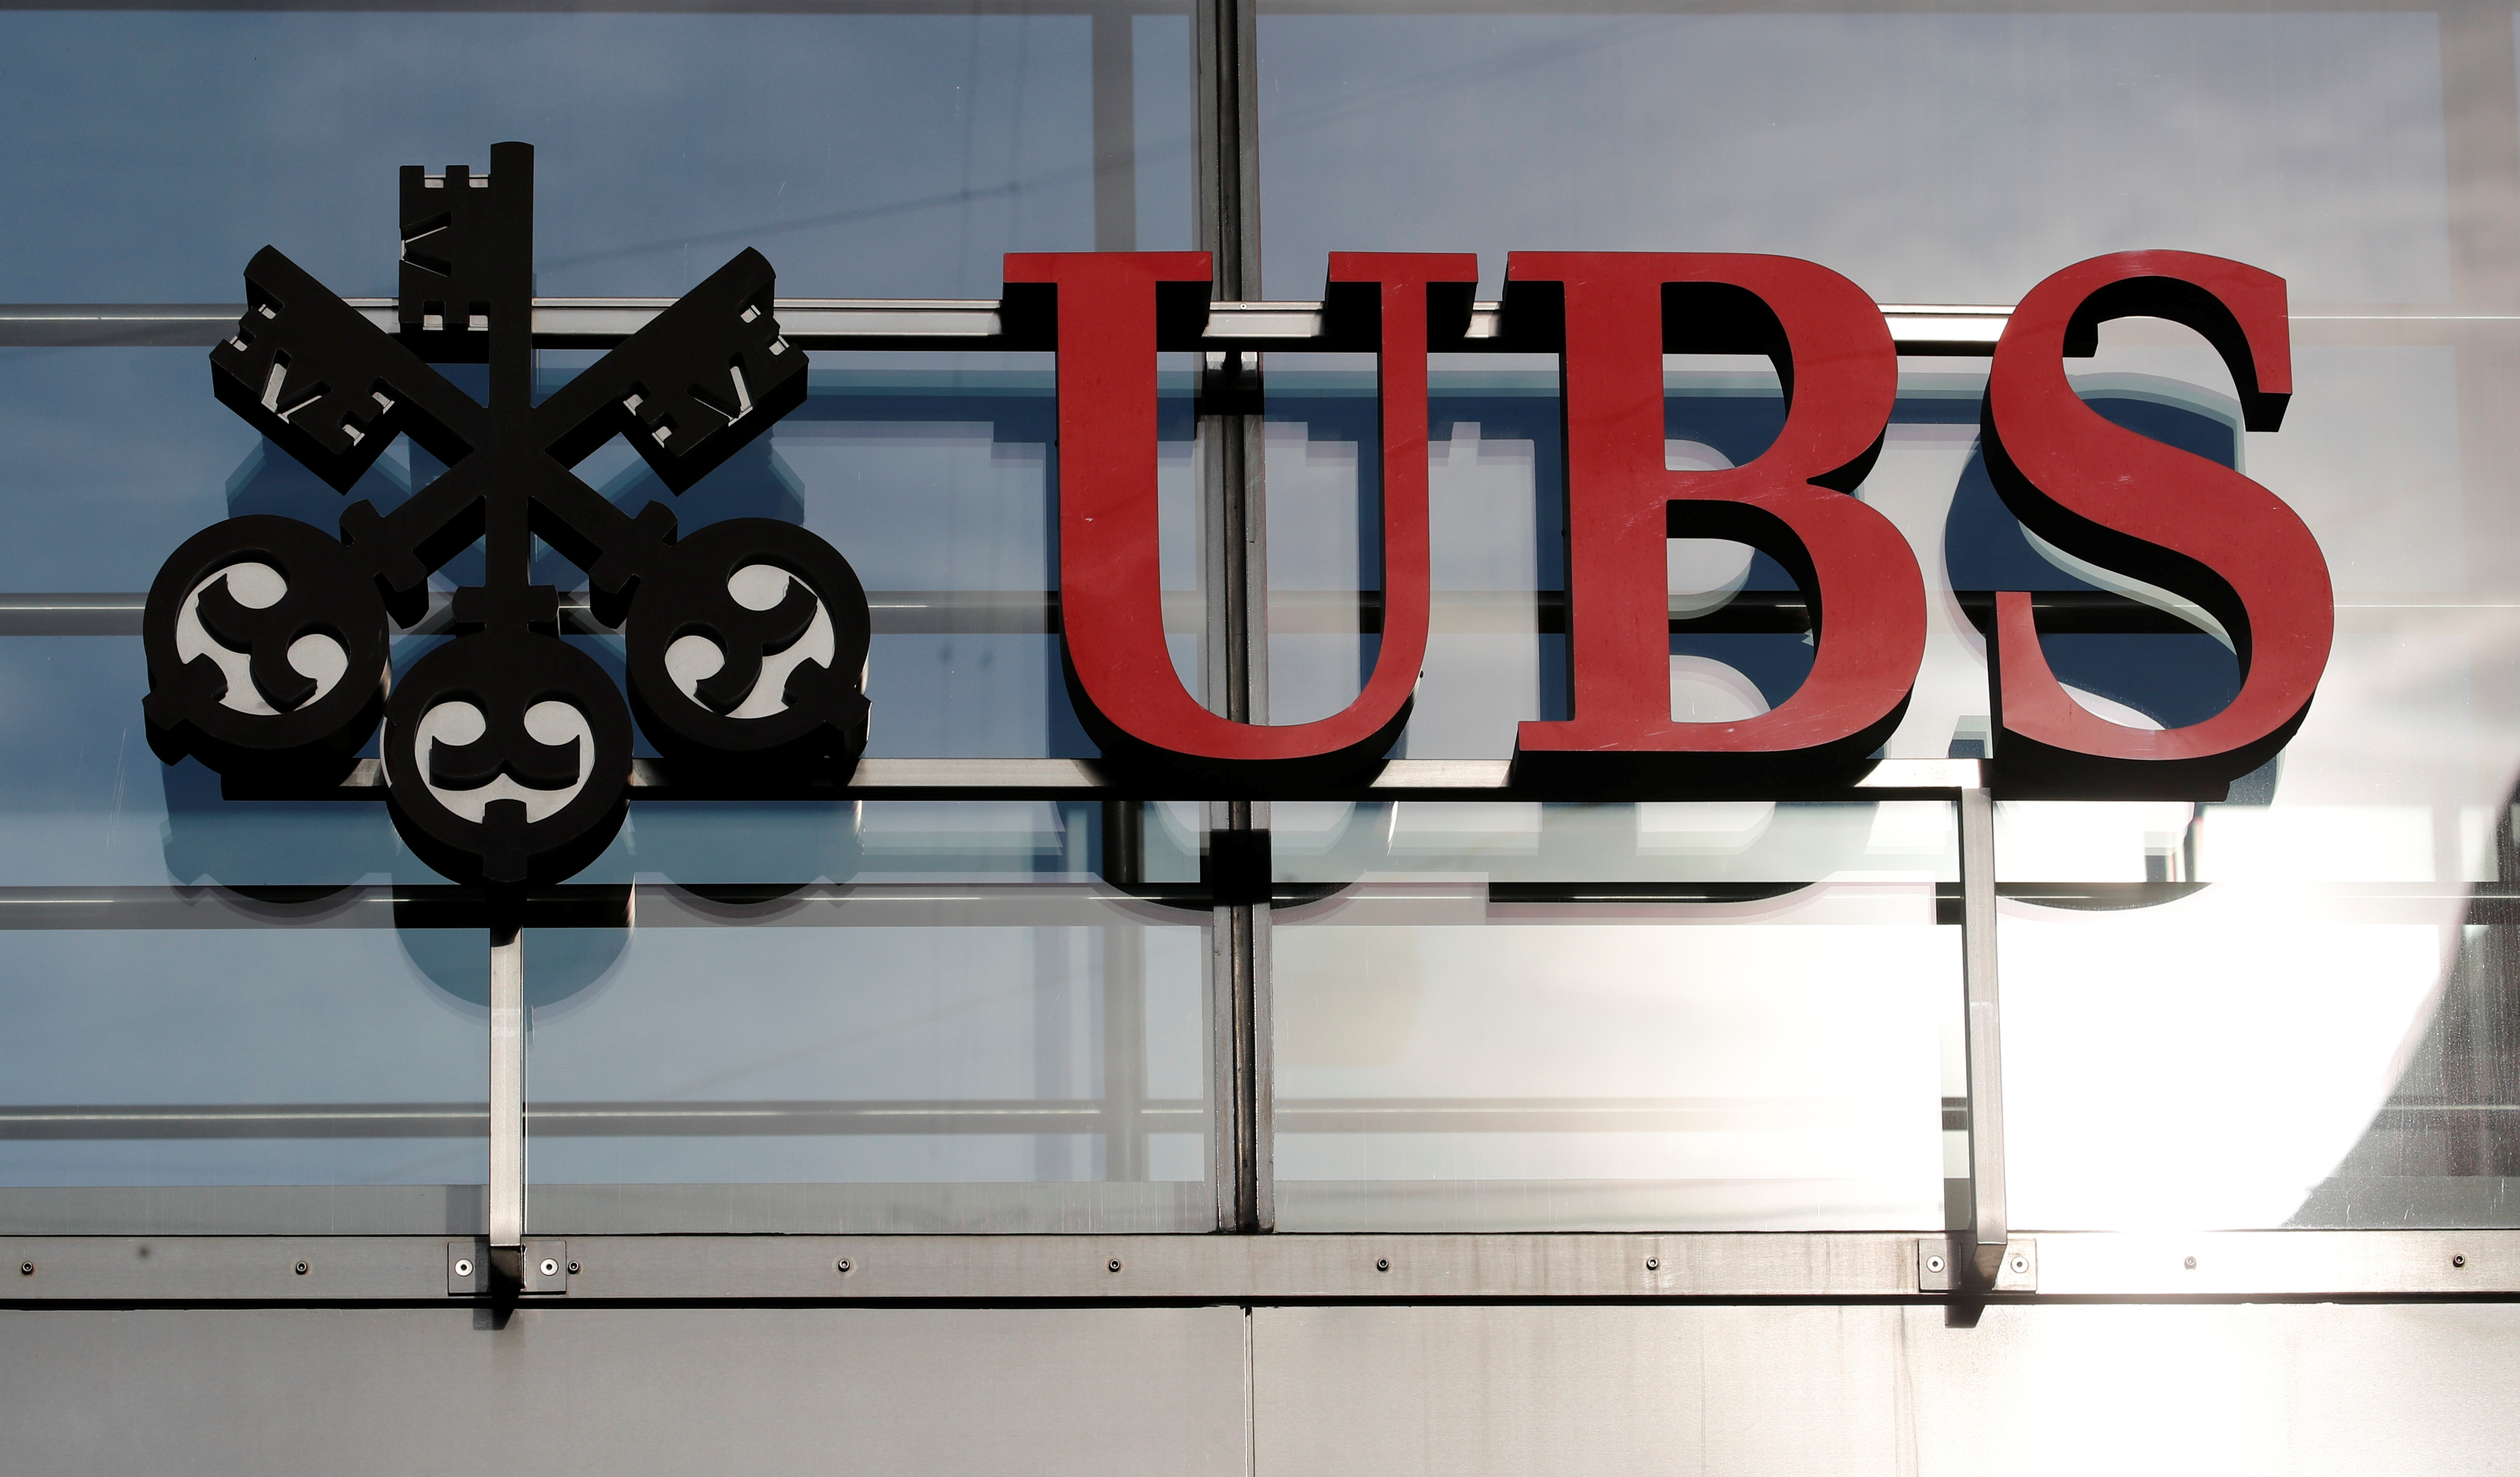 amende-de-3-7-milliards-d-euros-requise-contre-ubs